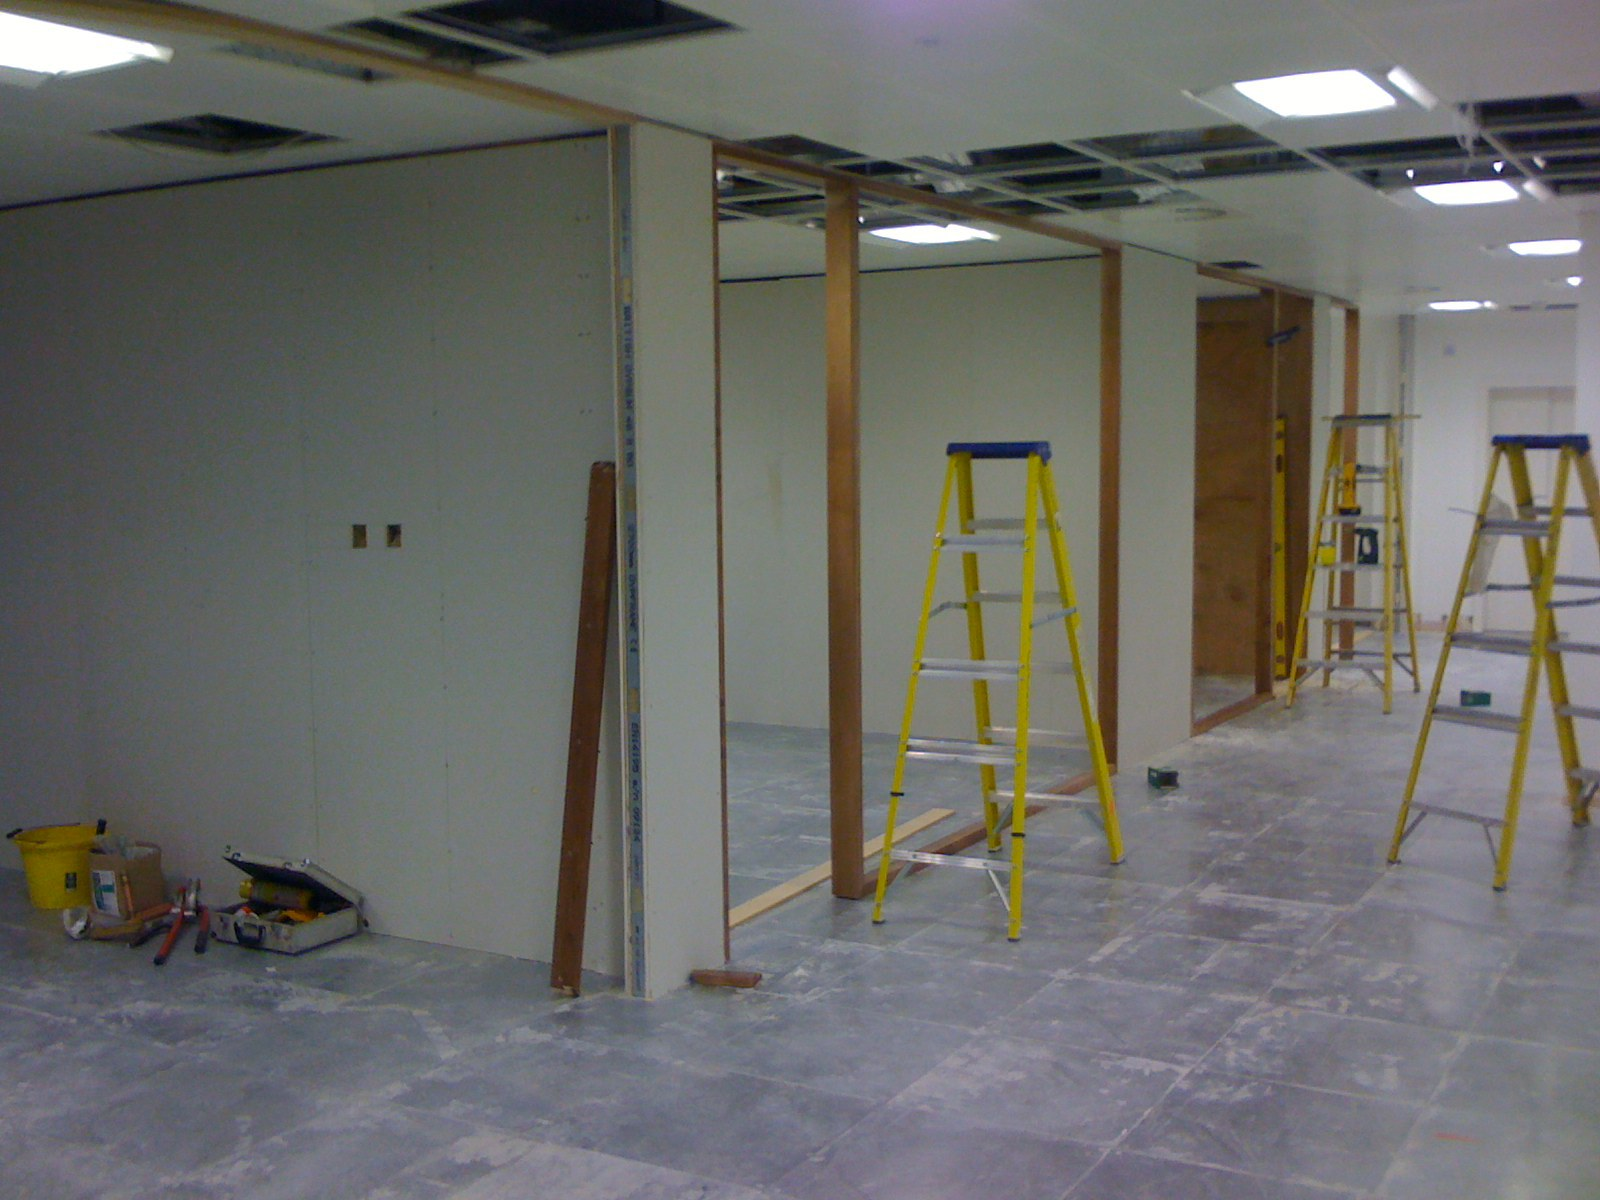 New meeting rooms and side offices